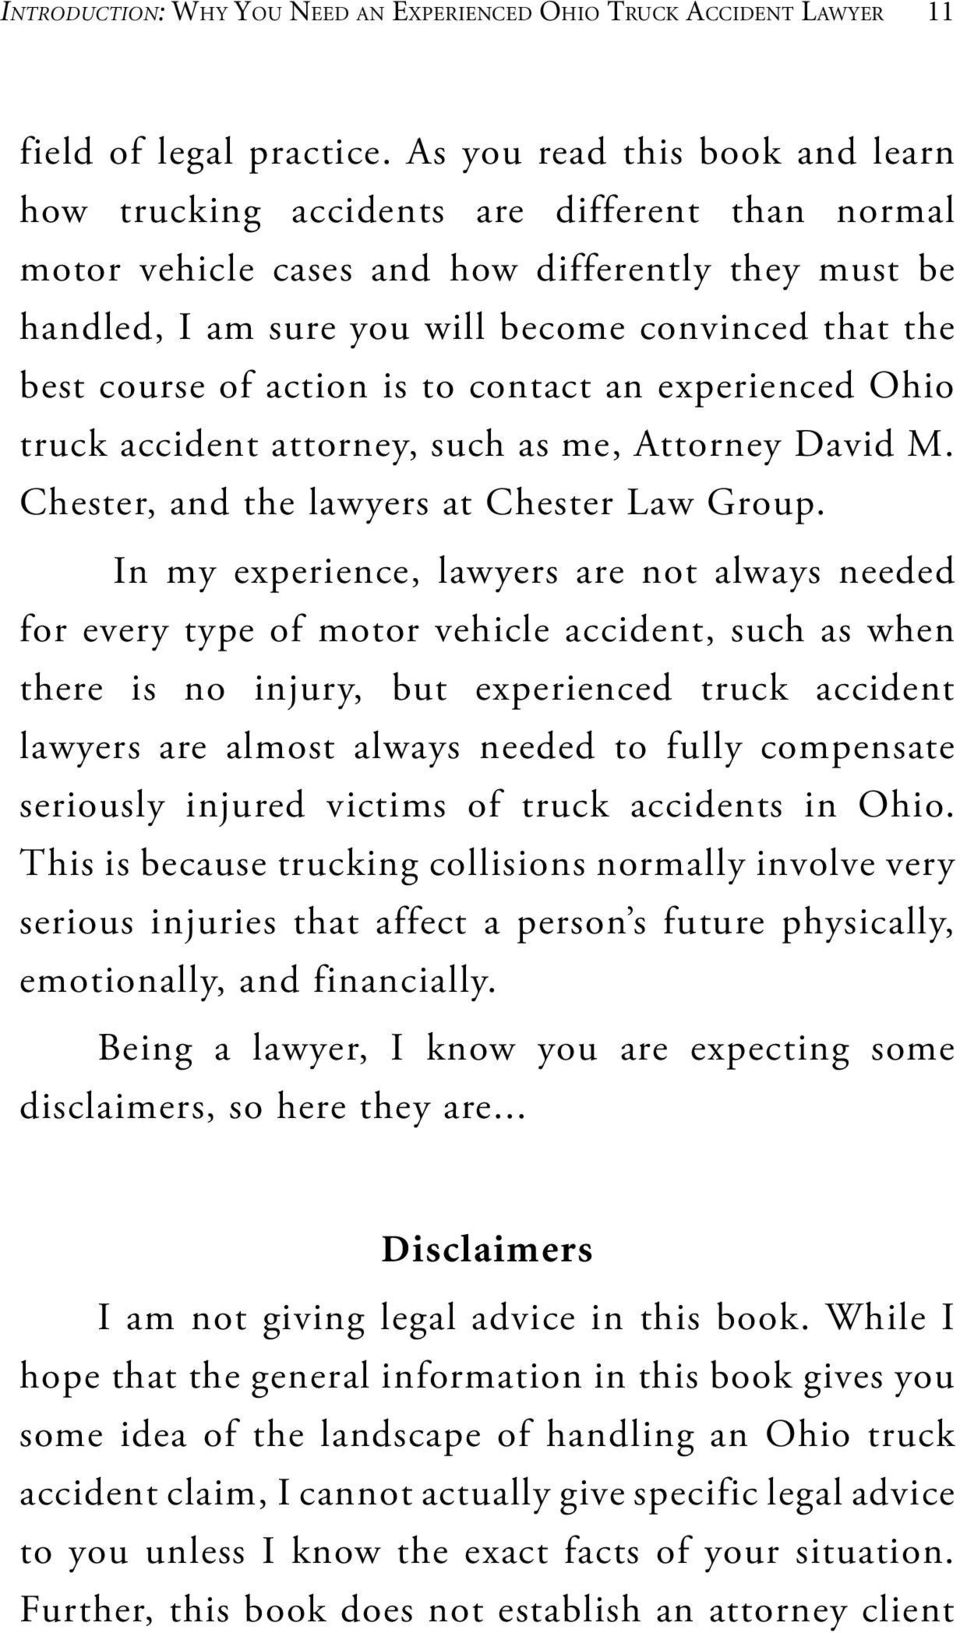 of action is to contact an experienced Ohio truck accident attorney, such as me, Attorney David M. Chester, and the lawyers at Chester Law Group.